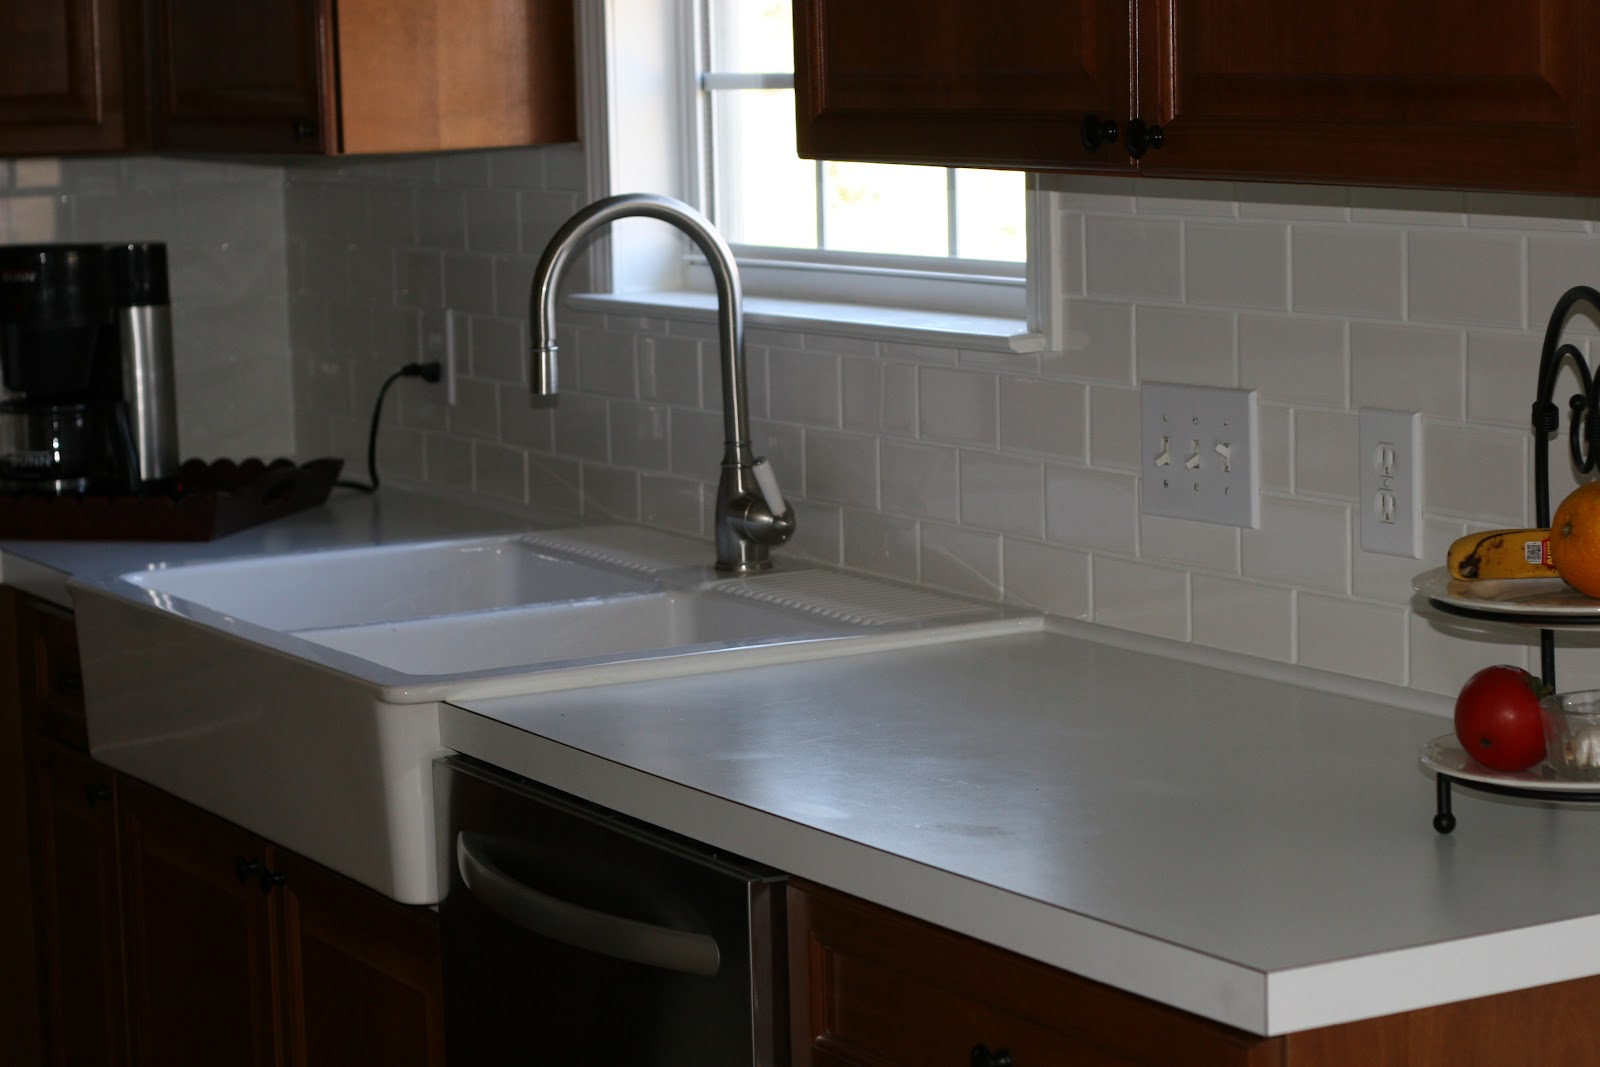 what makes me happy new kitchen sink and backsplash kitchen undermount sink blanco adon xl 6 s sink hzmeshow